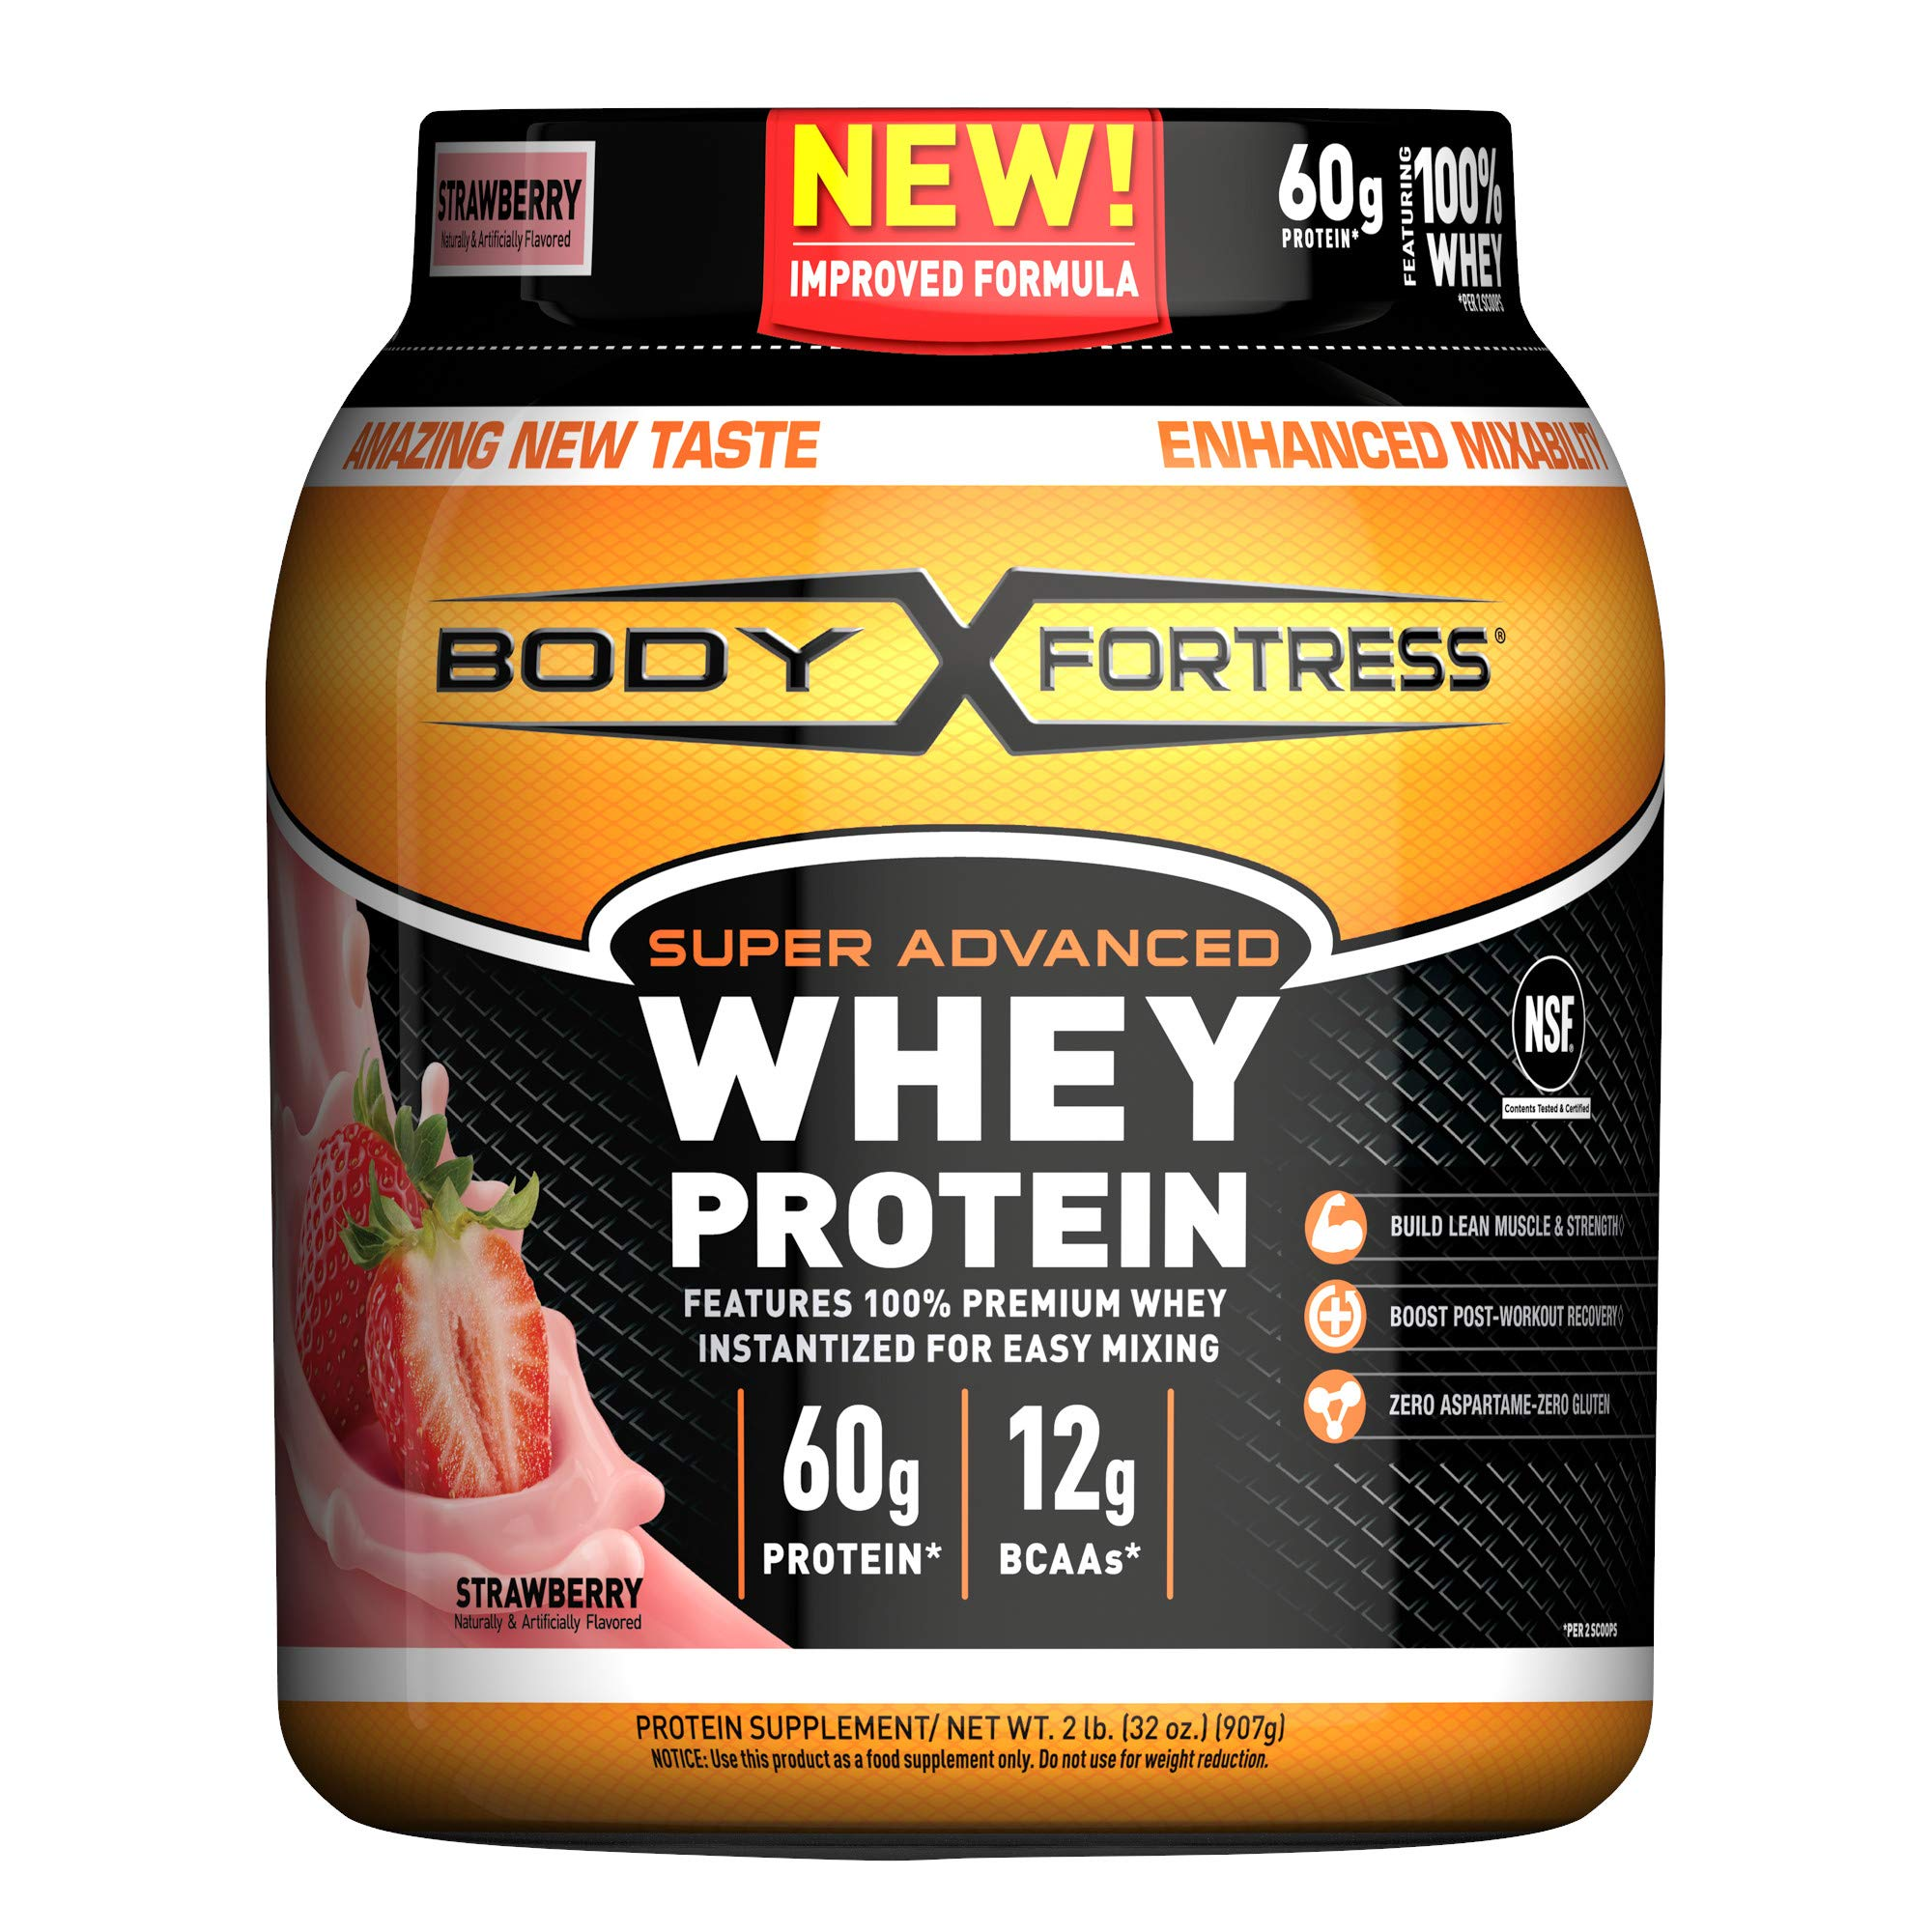 Body Fortress Super Advanced Whey Protein Powder, Gluten Free, Strawberry, 2 lbs (Packaging May Vary) by Body Fortress (Image #1)